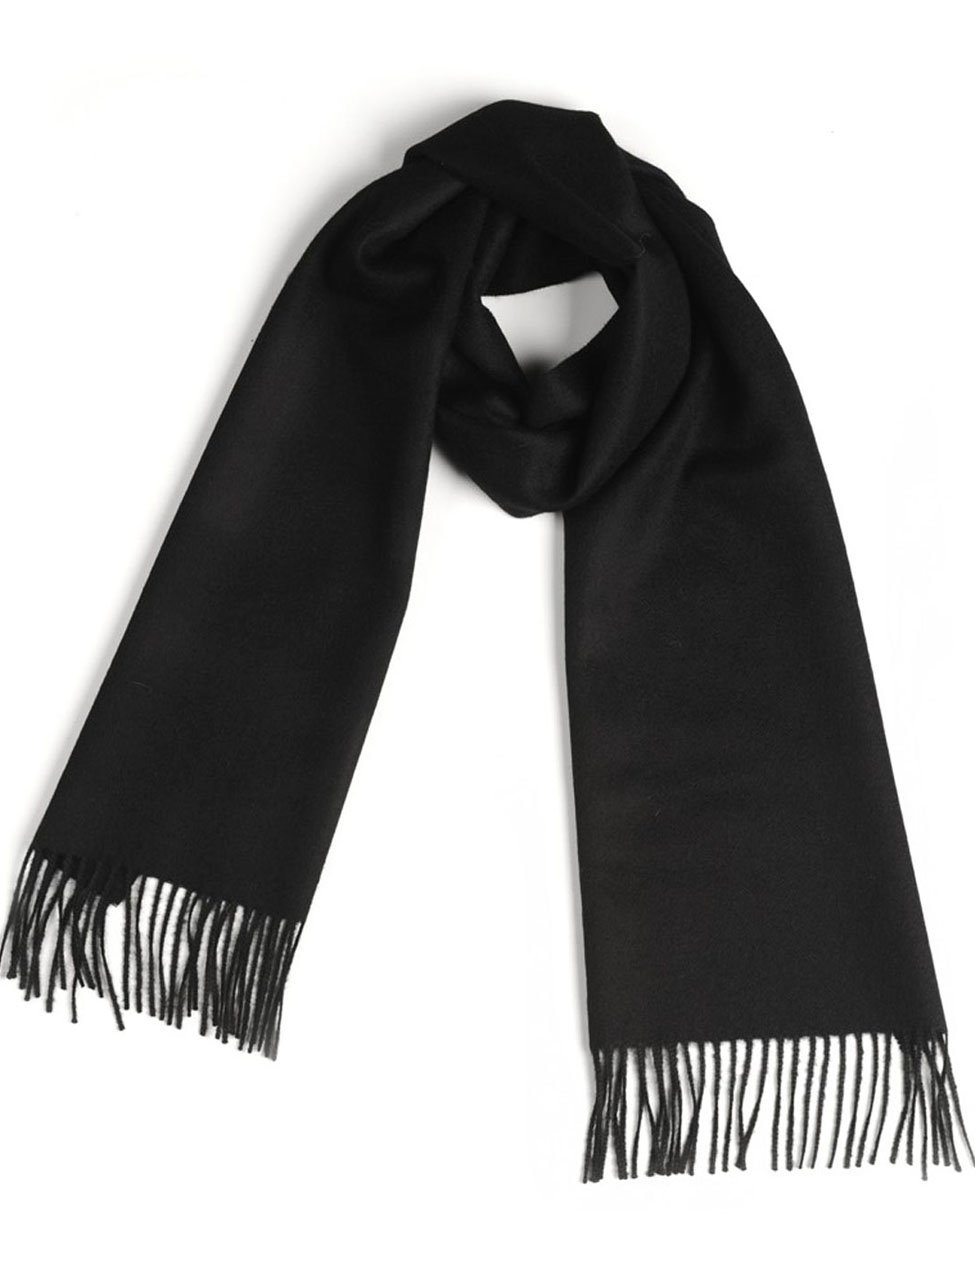 Luxury 100% Pure Baby Alpaca Scarf, for Men and Women - A Great Gift Idea in Many Colors (Black)